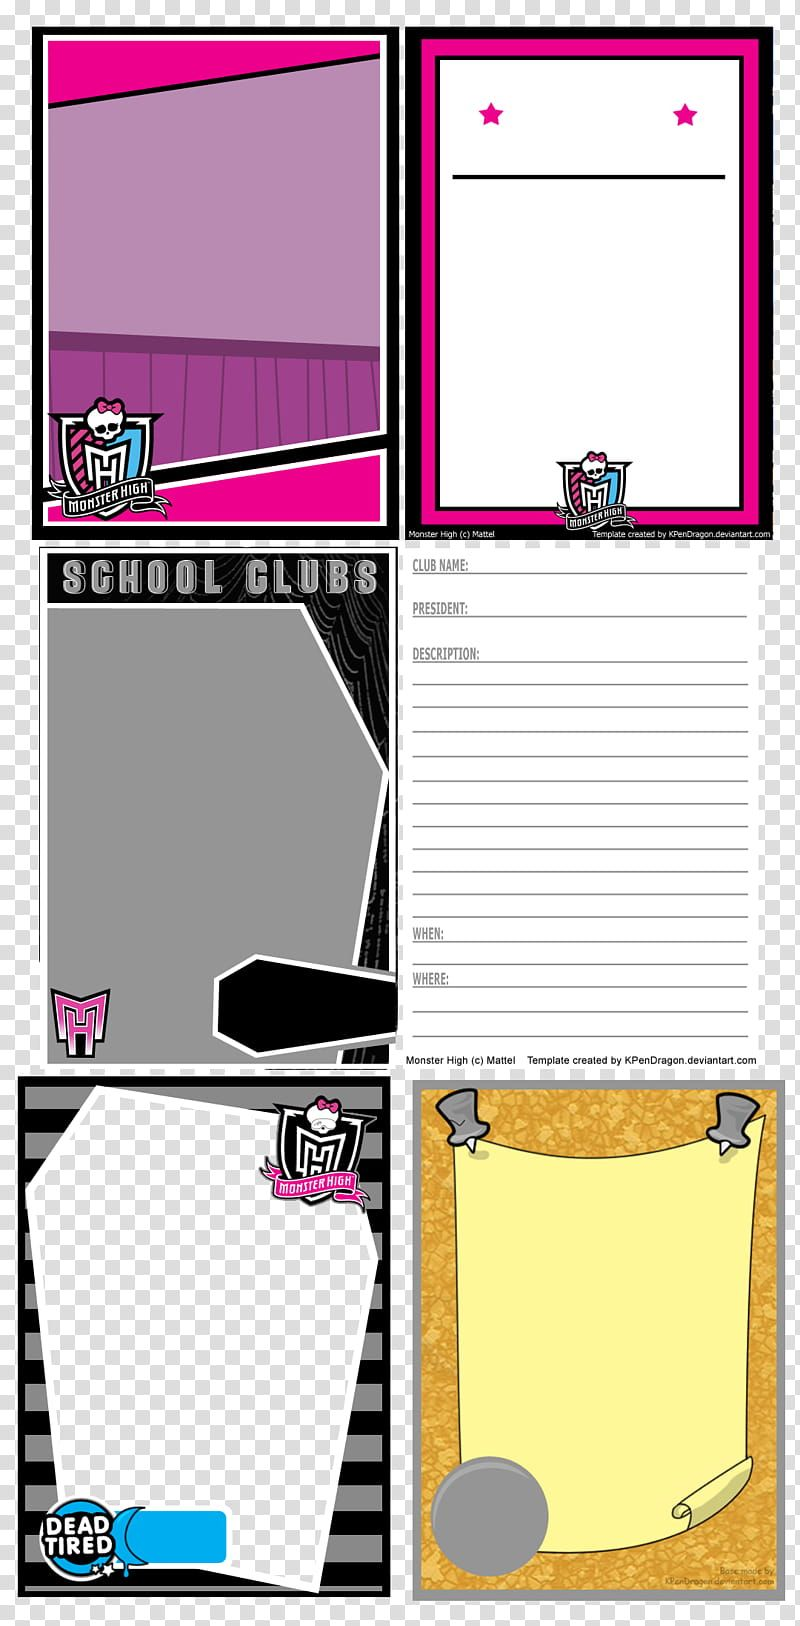 Mh Card Templates Transparent Background Png Clipart In 2020